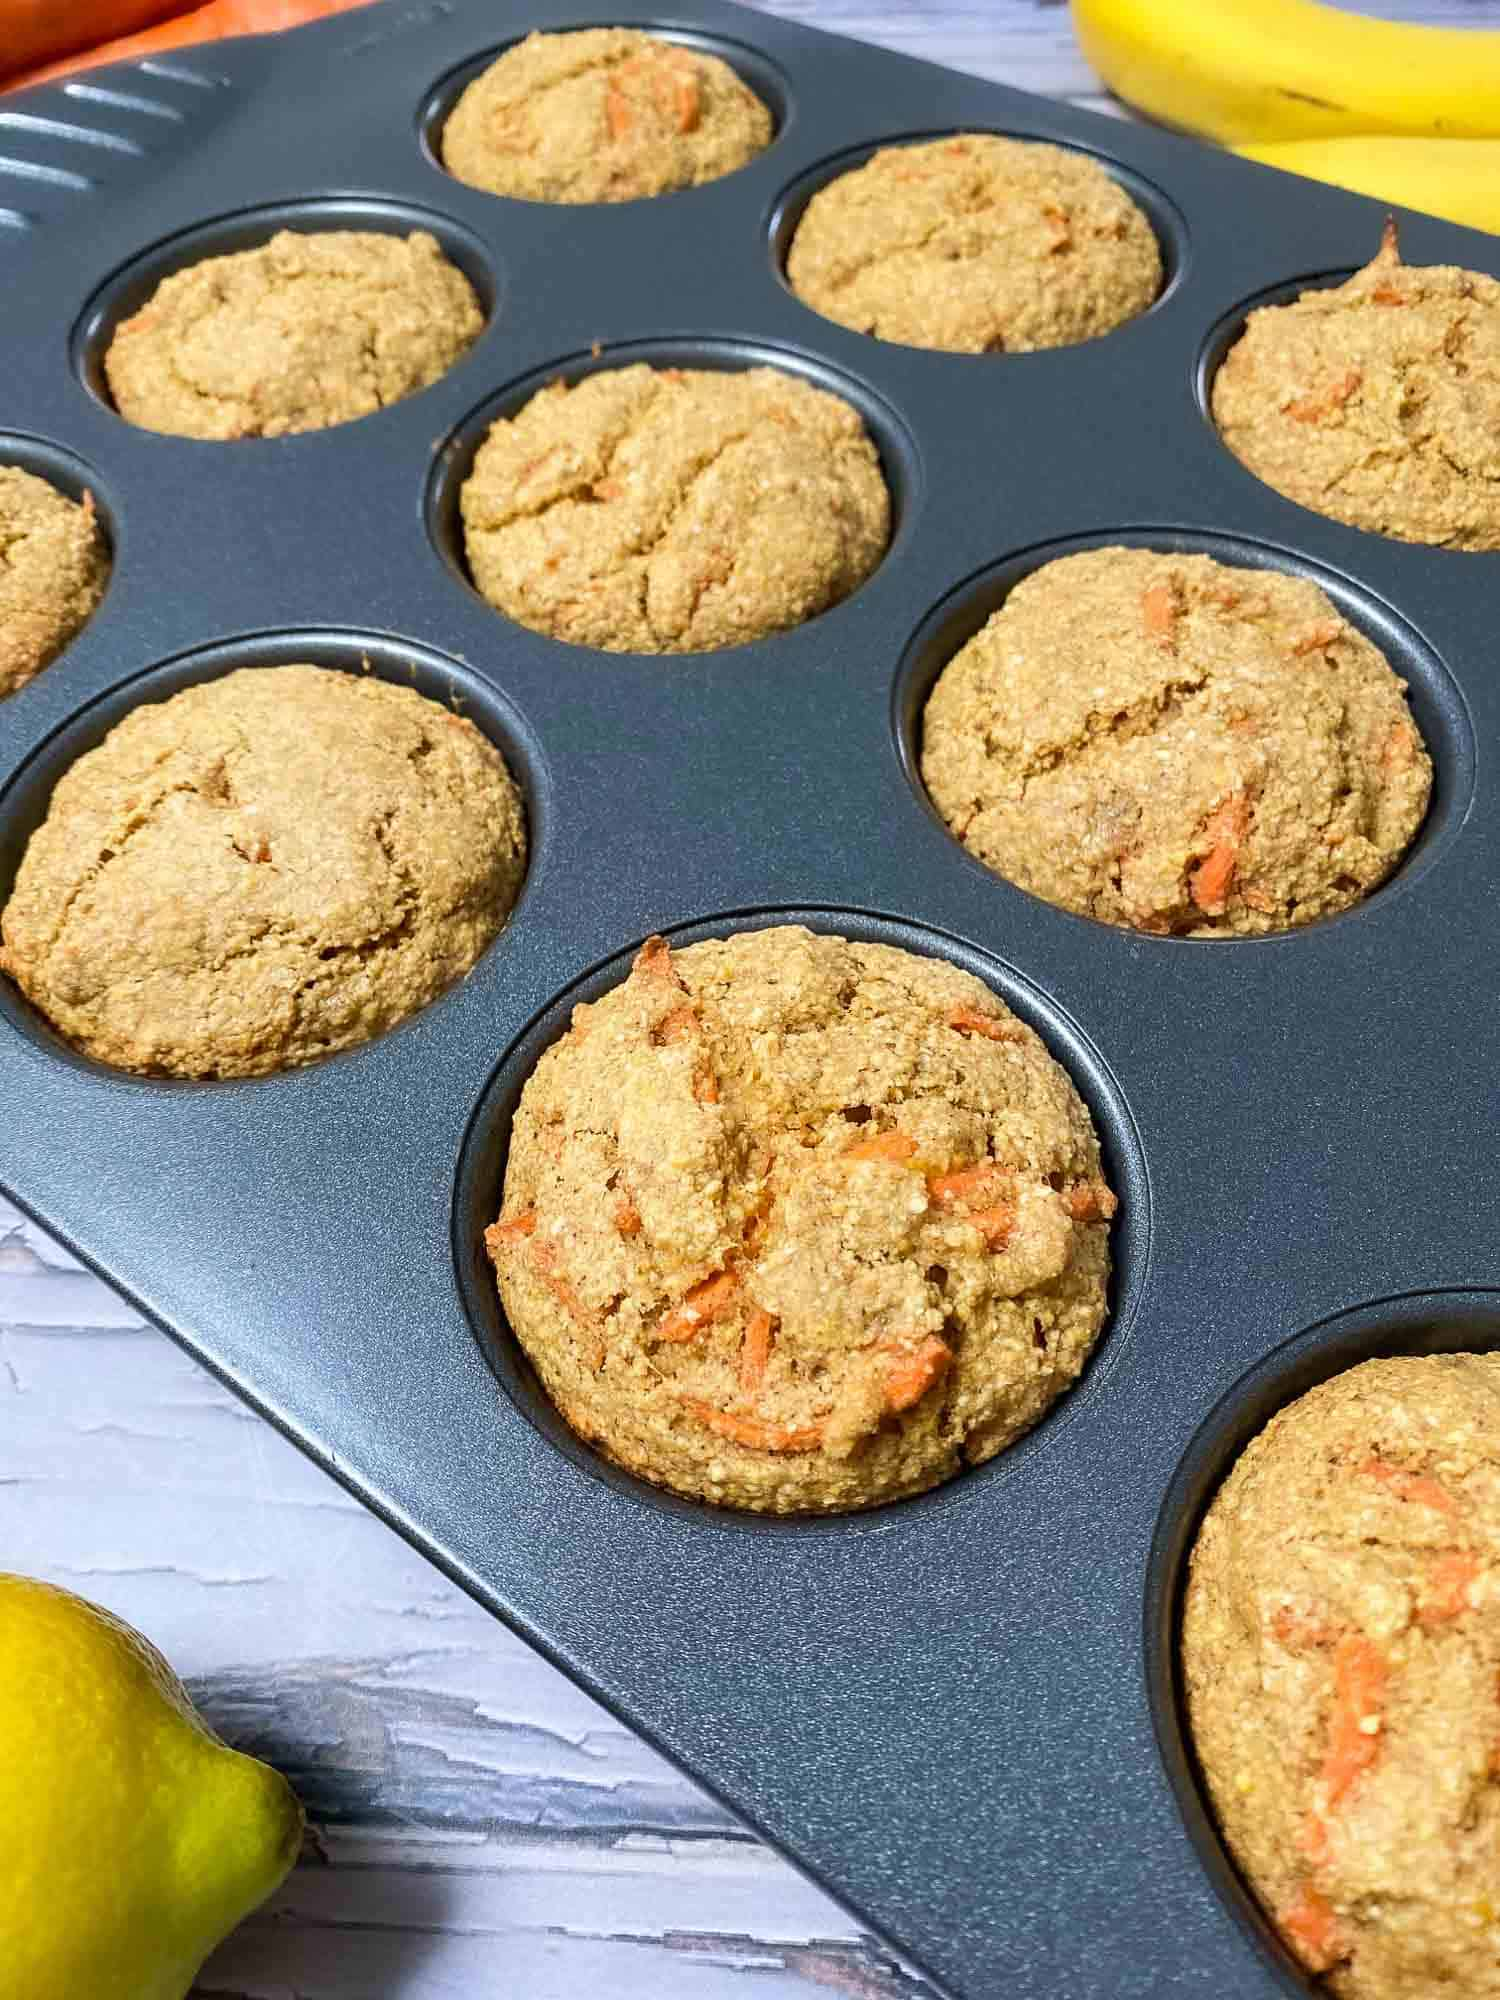 muffin pan with baked banana carrot muffins inside